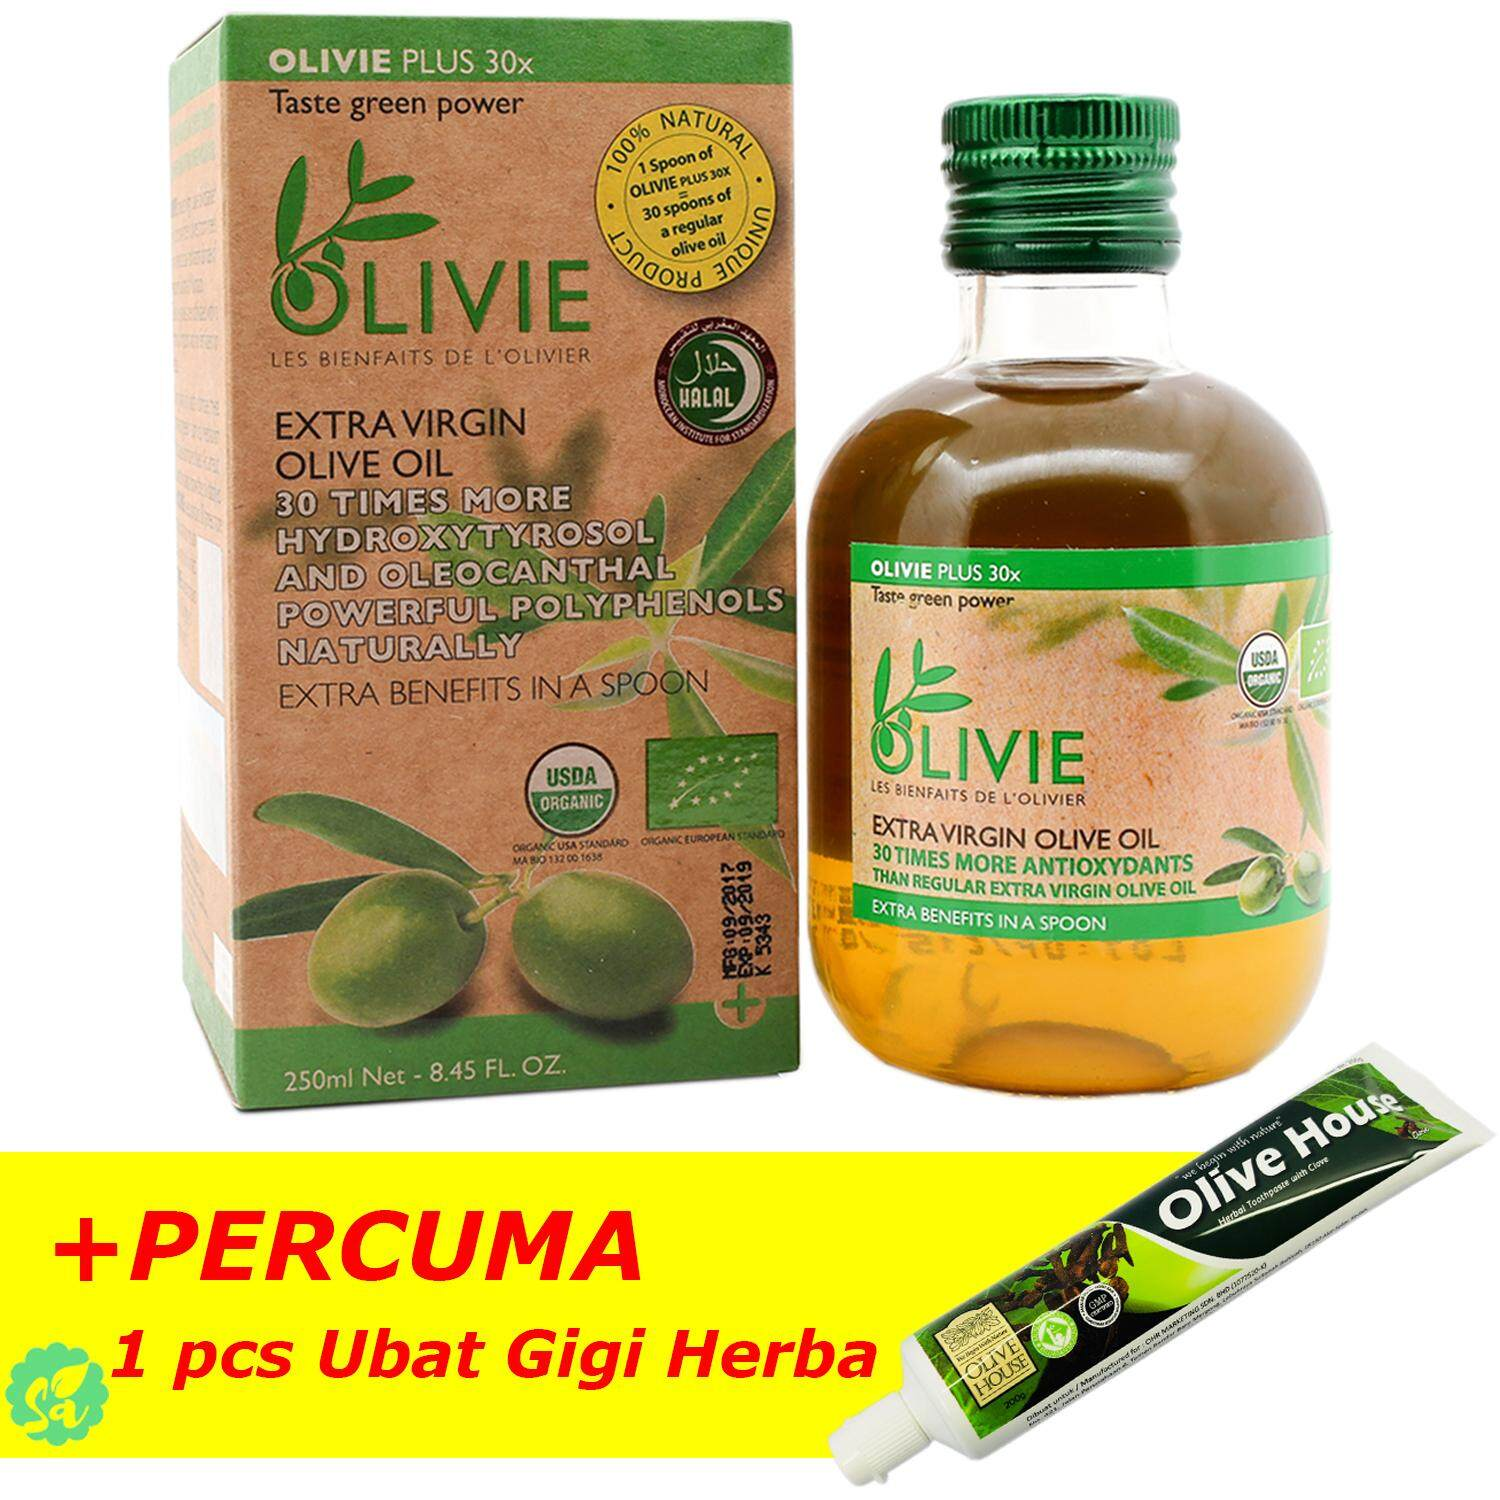 Olive House Products For The Best Price In Malaysia Minyak Kutus Original Extra Virgin Oil Olivie Plus 30x